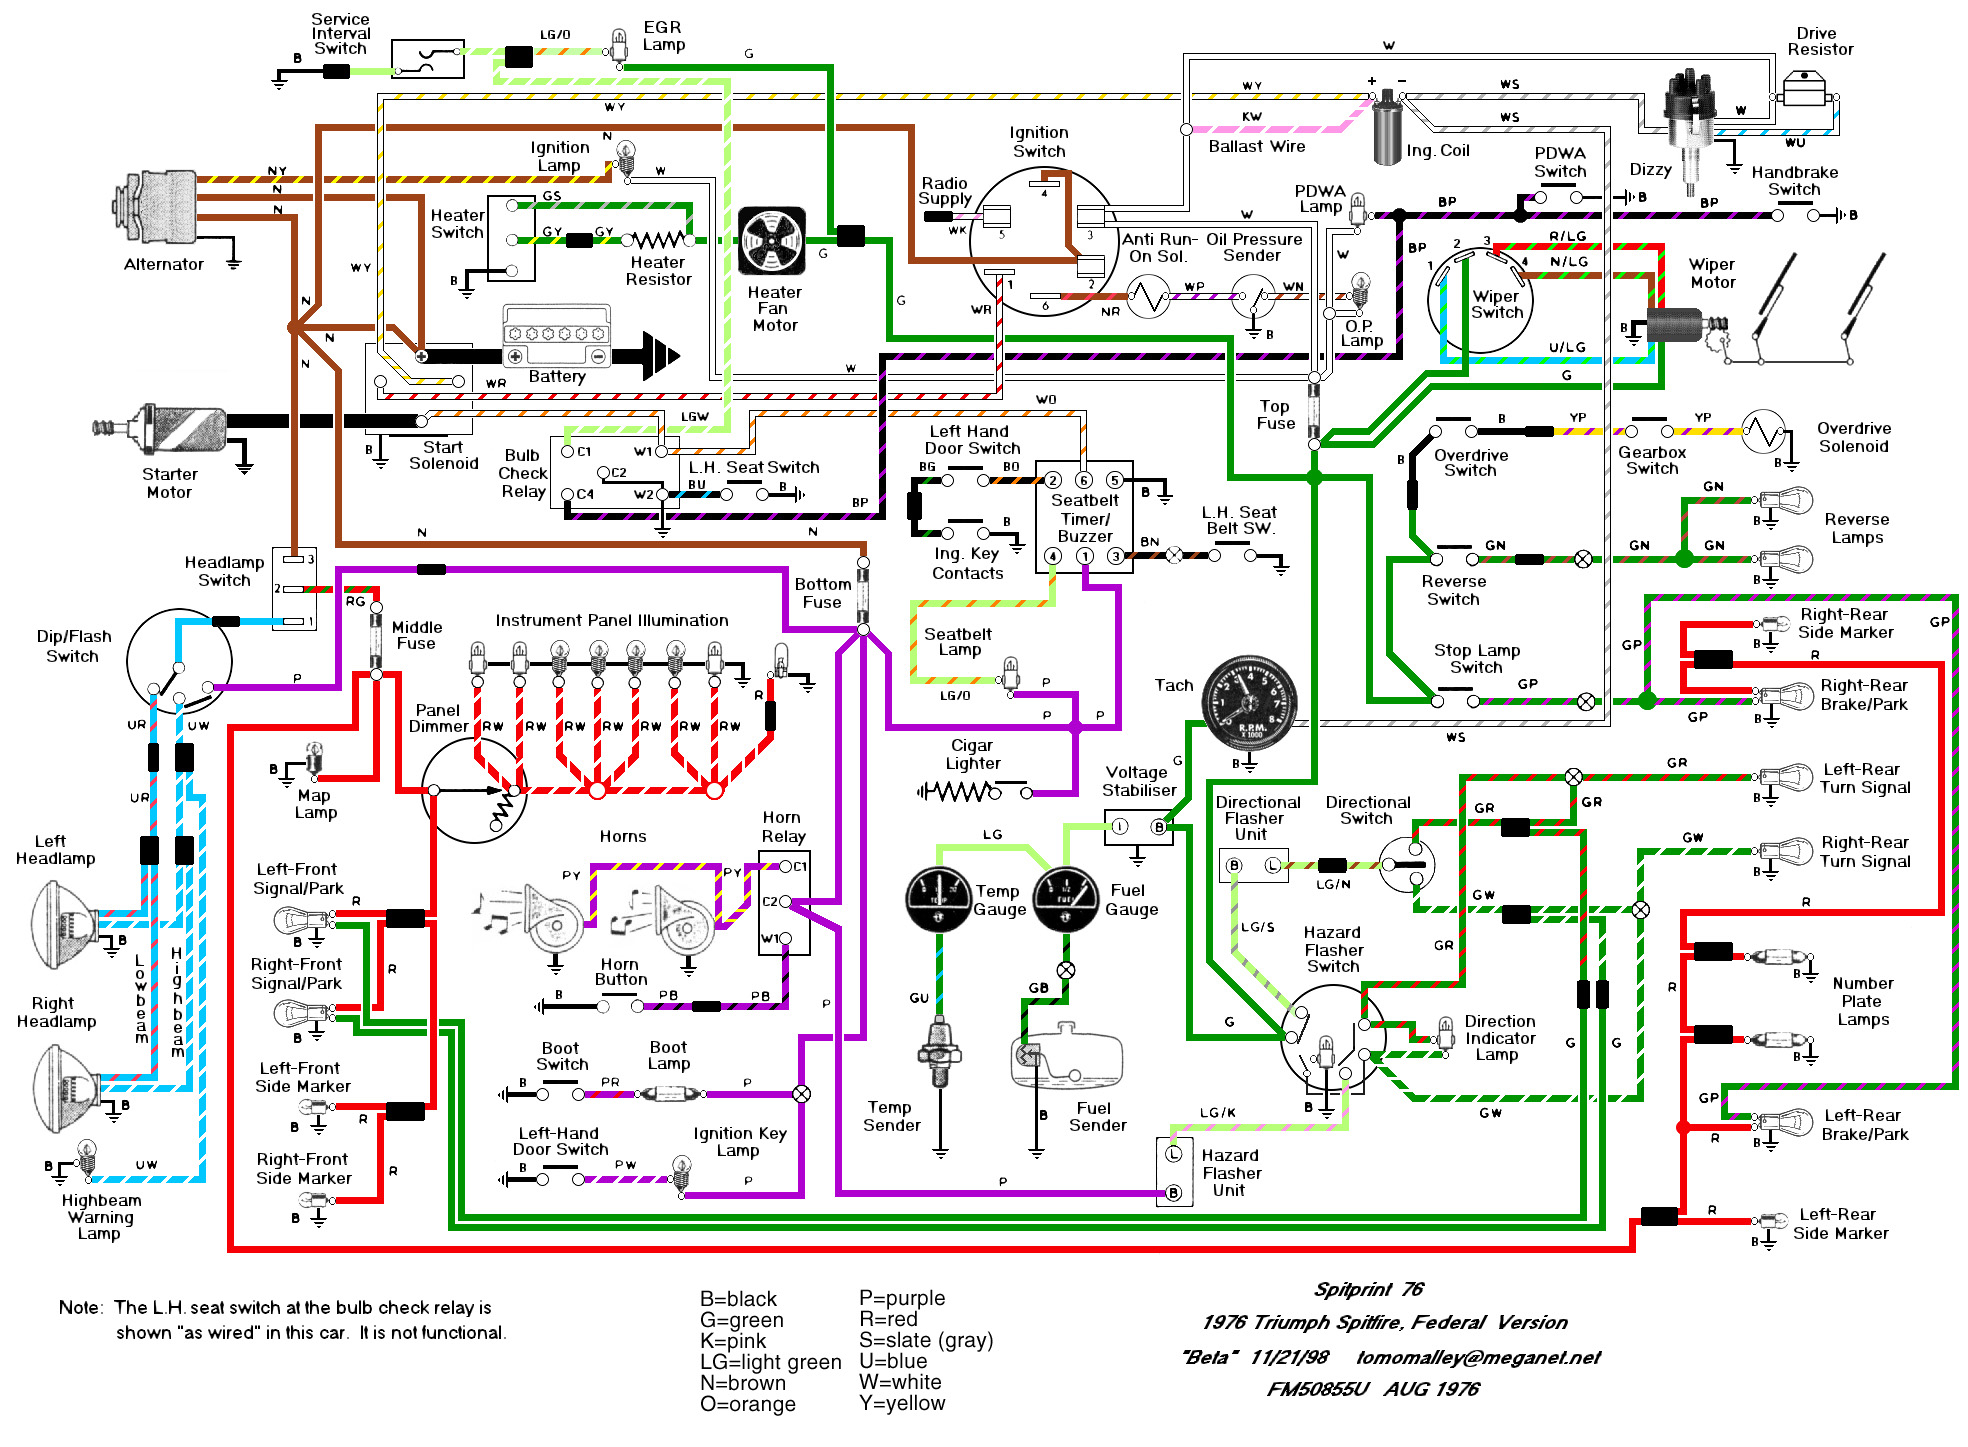 76diagram wiring schematics and diagrams triumph spitfire, gt6, herald wiring diagram at panicattacktreatment.co